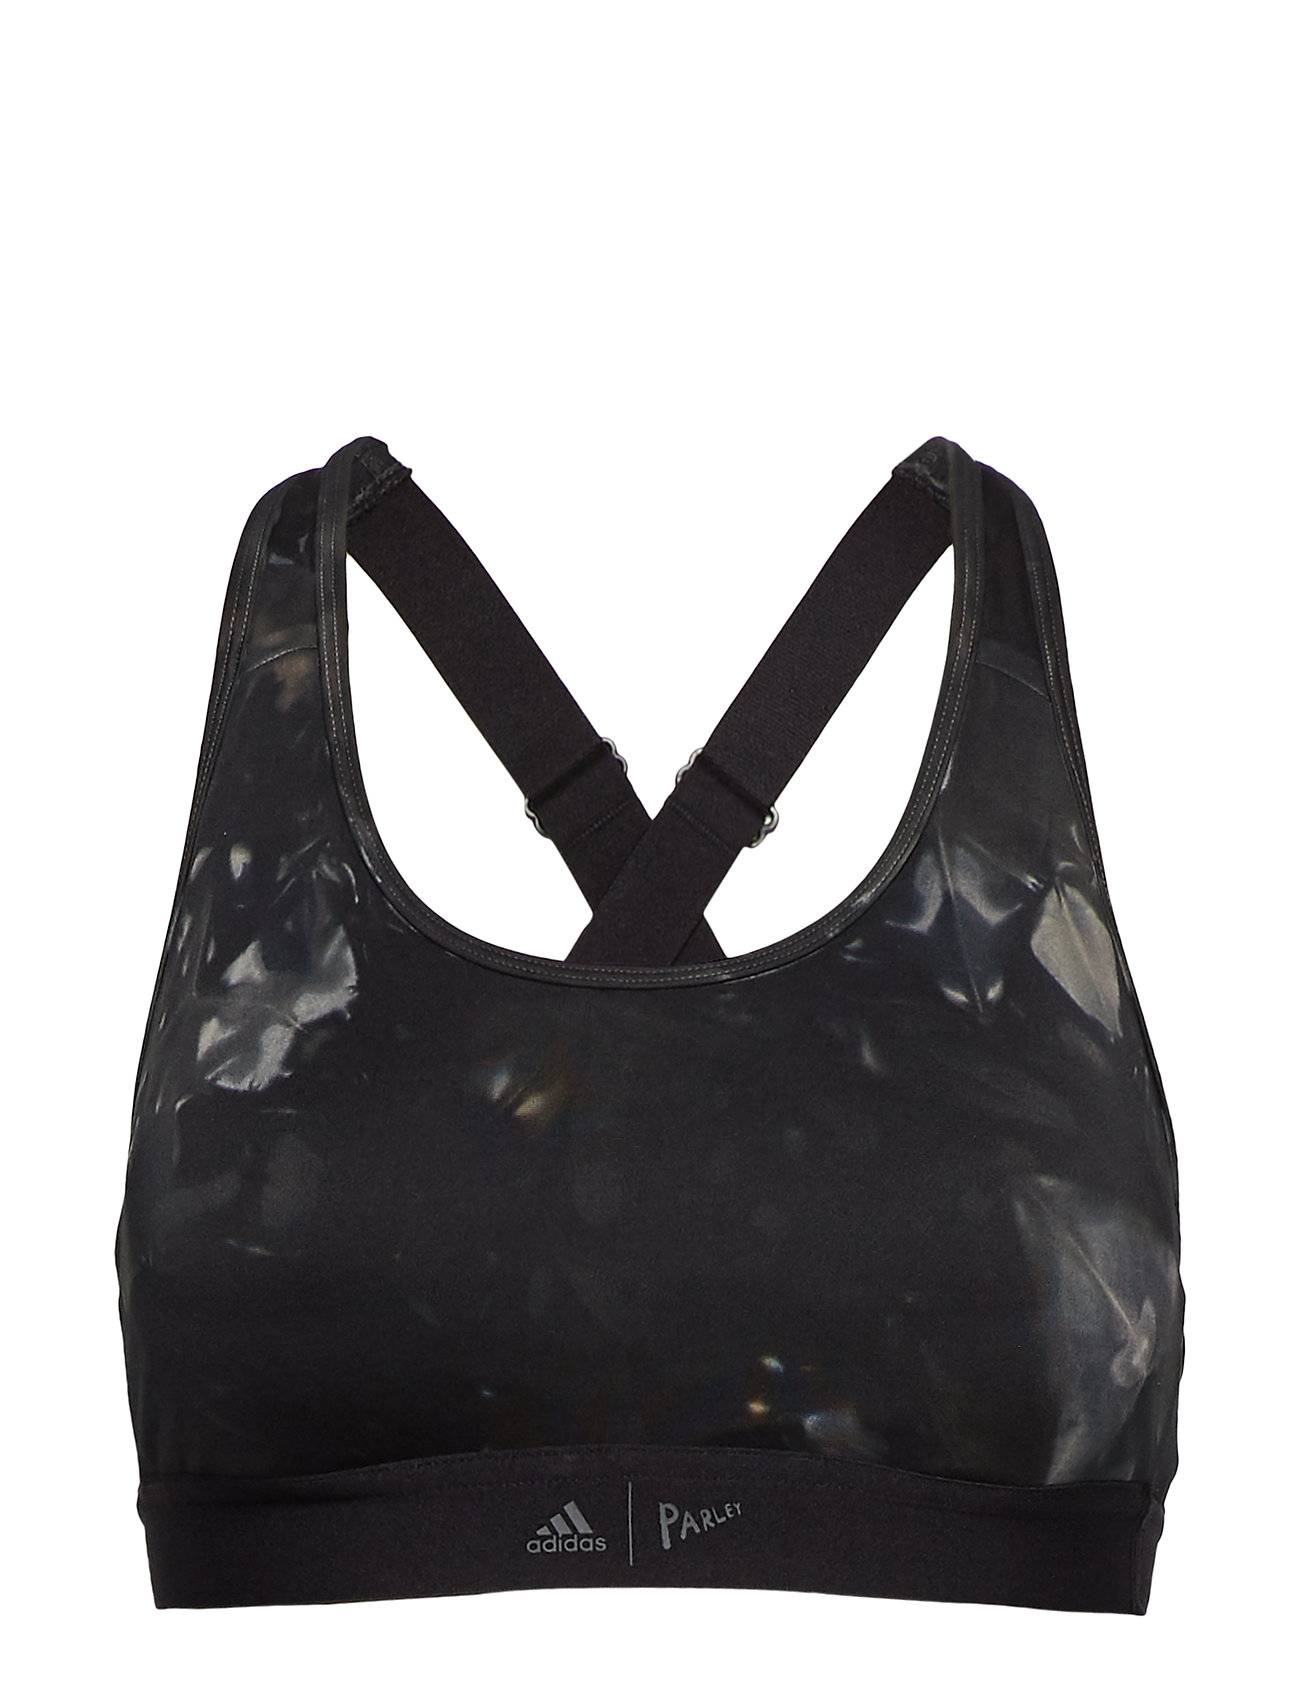 Image of adidas Performance Dtr Parley Bra Lingerie Bras & Tops Sports Bras - ALL Musta